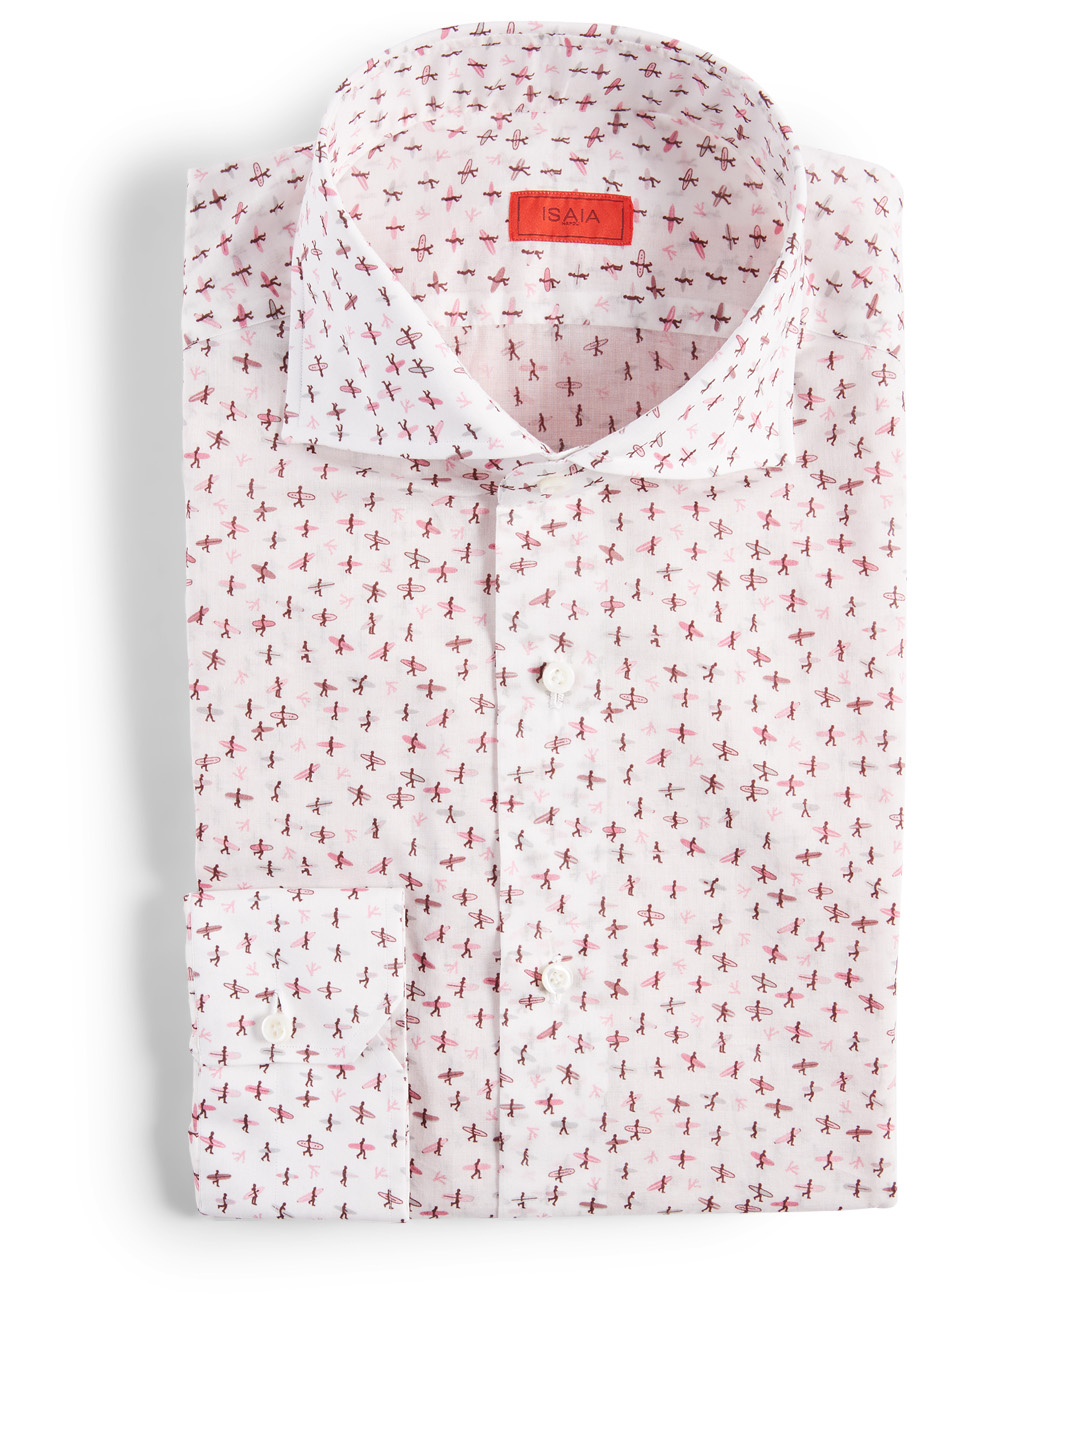 ISAIA Dress Shirt In Surf Print Men's White